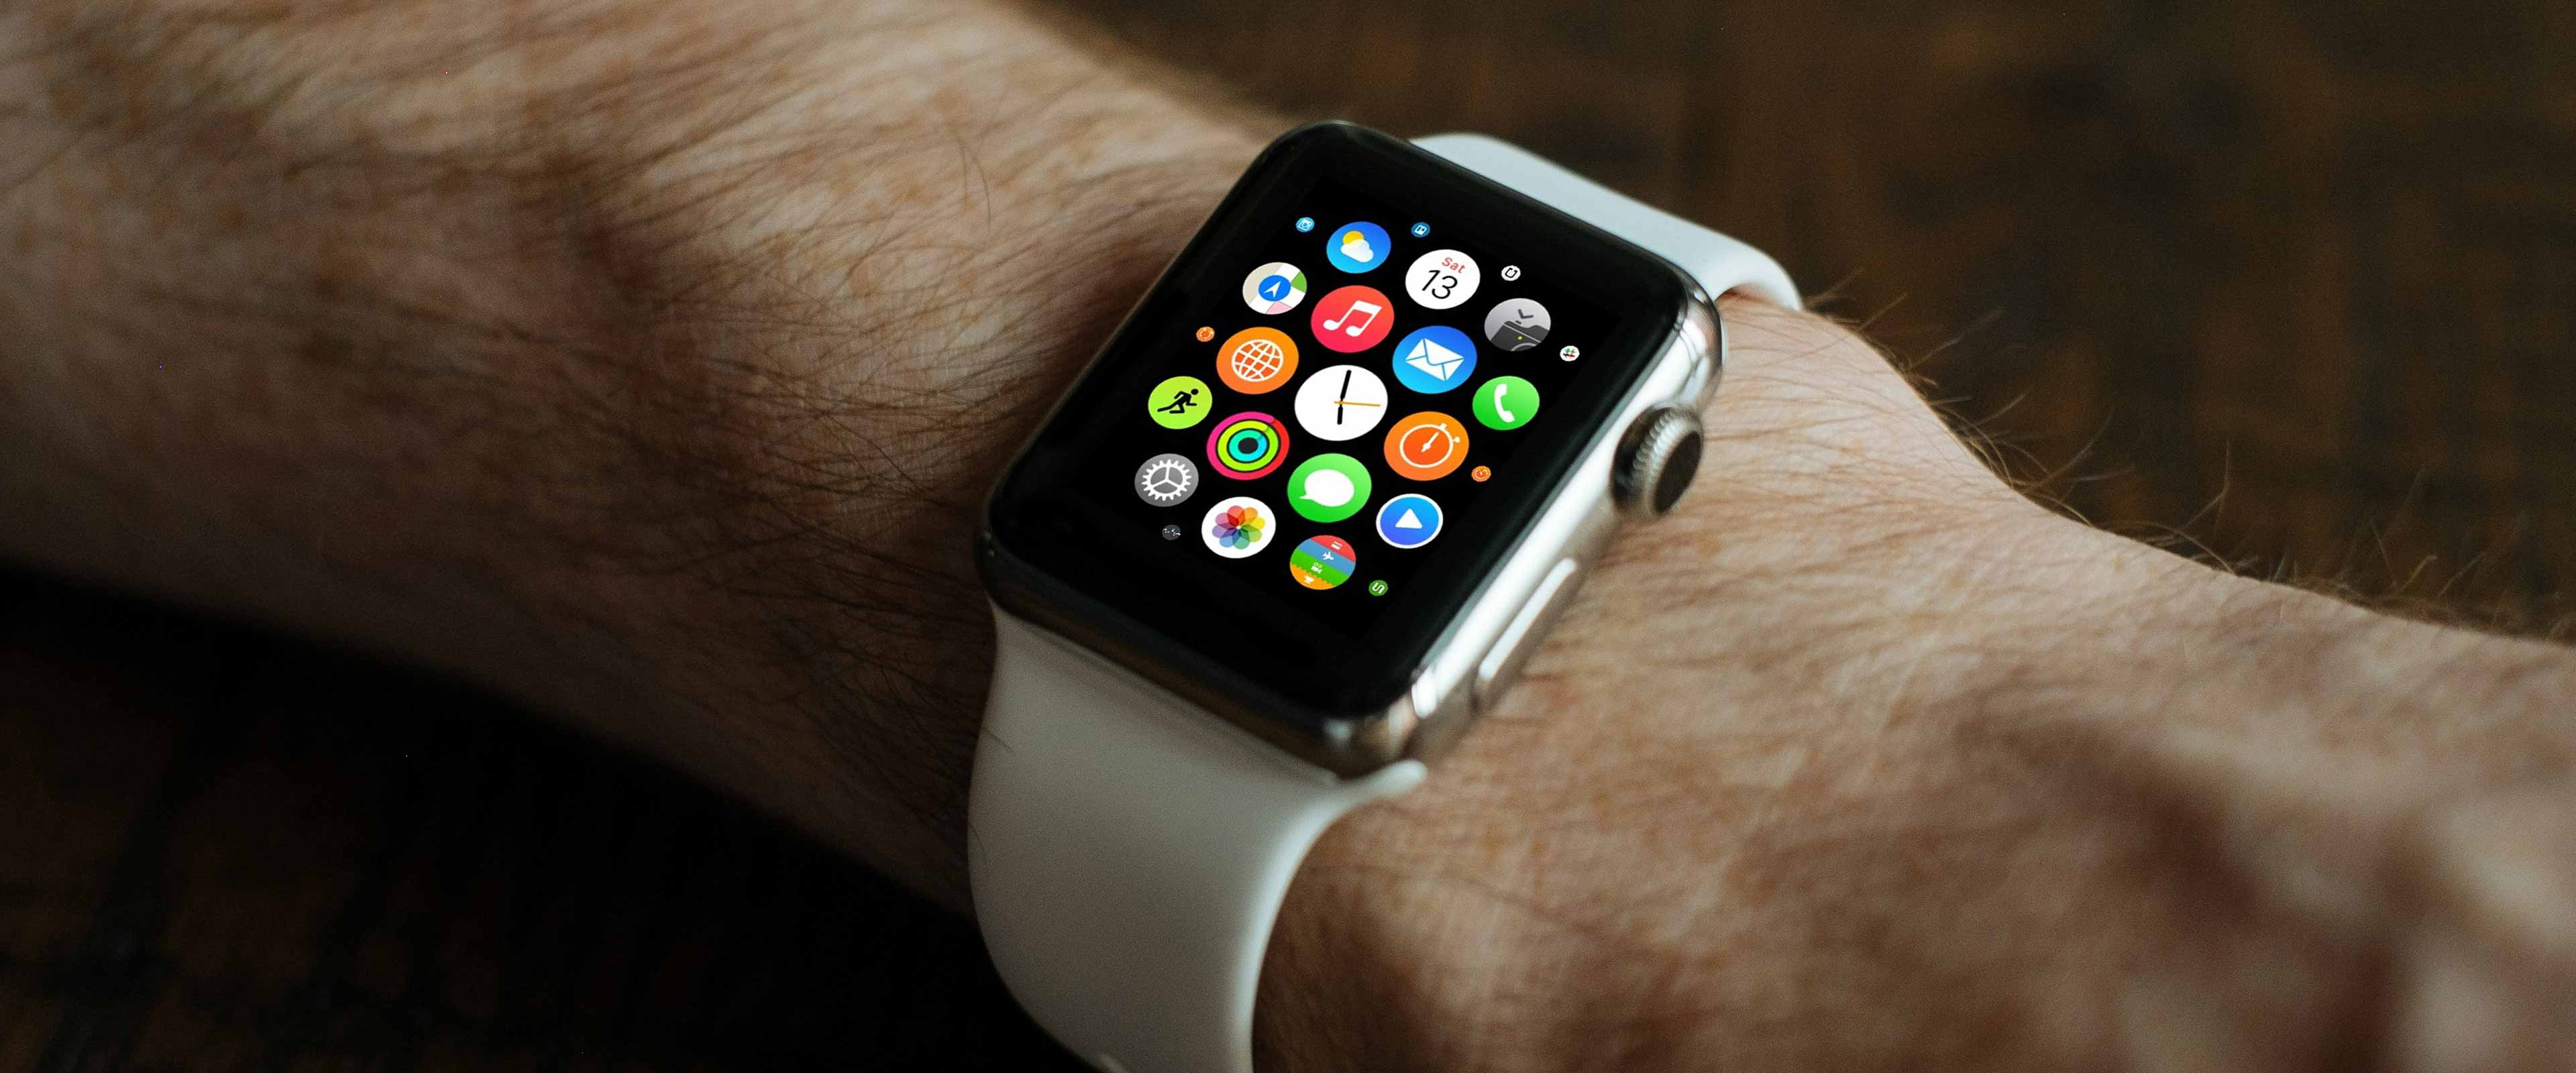 apple-watch-healthcare-daten-whatshealth